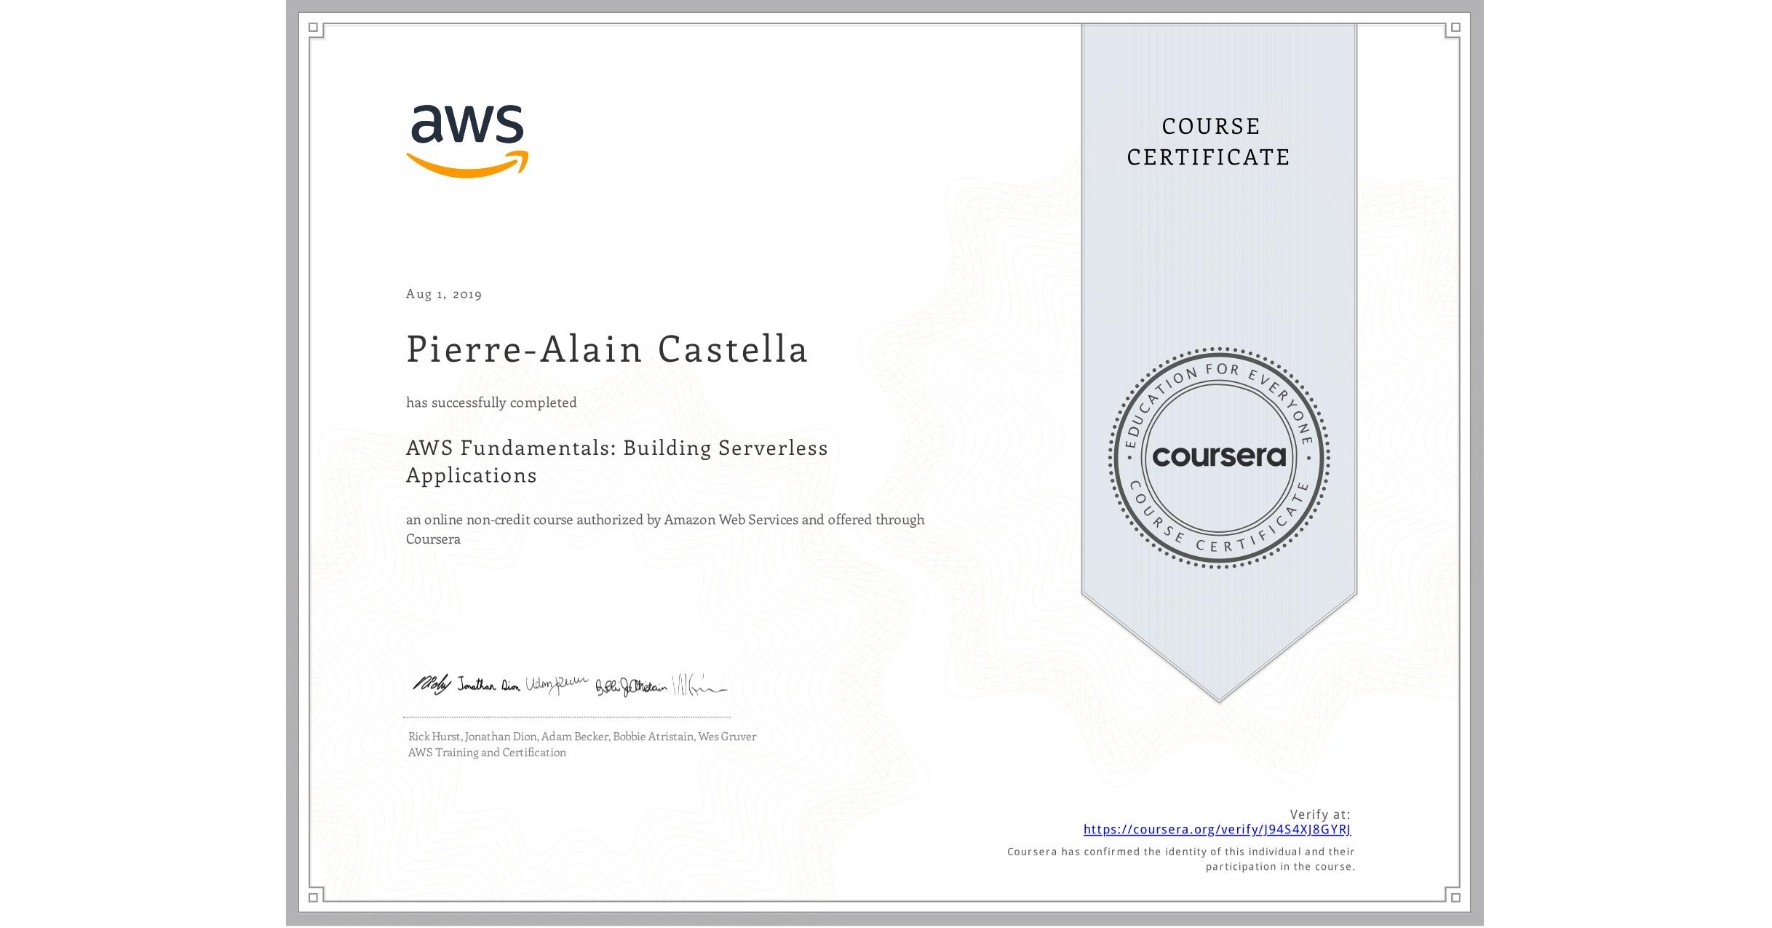 View certificate for Pierre-Alain Castella, AWS Fundamentals: Building Serverless Applications, an online non-credit course authorized by Amazon Web Services and offered through Coursera